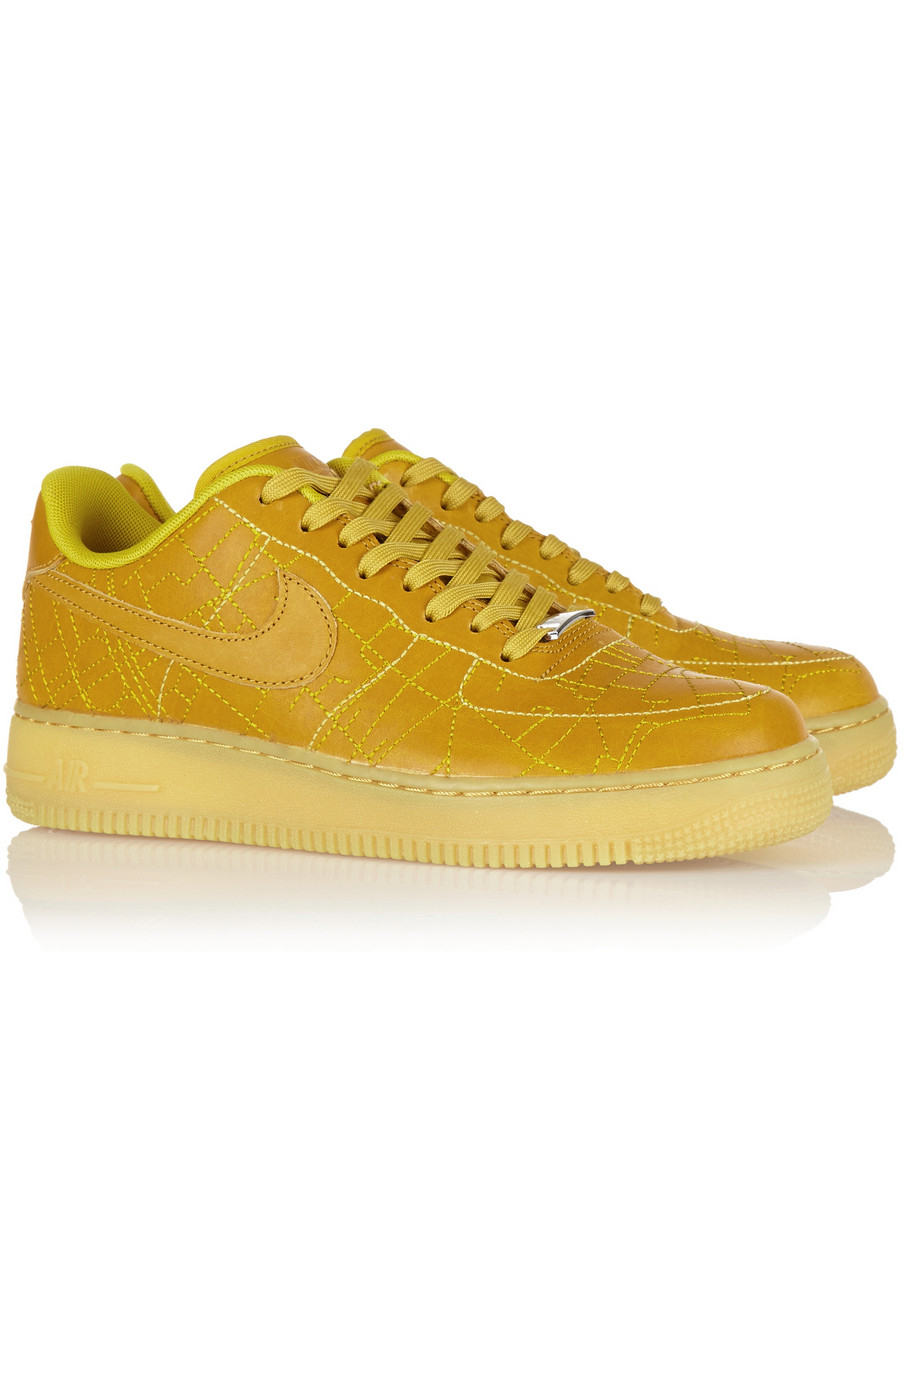 Lyst Nike 'Air Force 1' Sneakers in Yellow